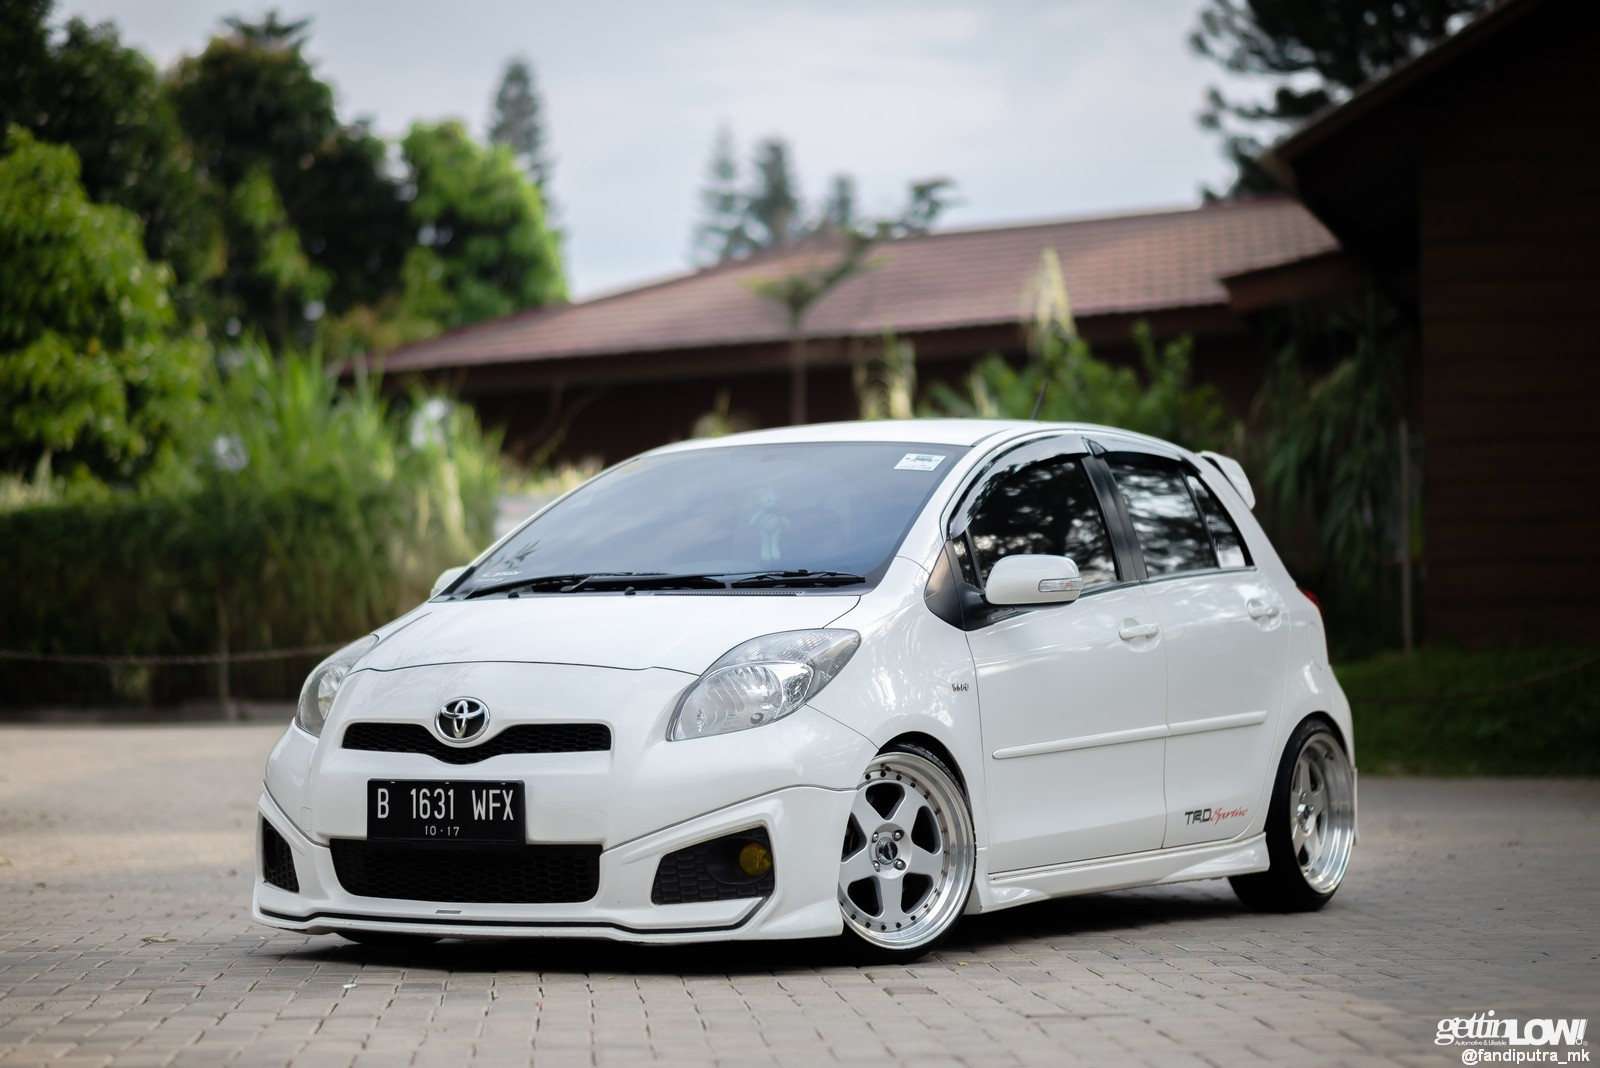 toyota yaris trd modif harga all new 2015 gettinlow modifikasi simpel 2012 milik